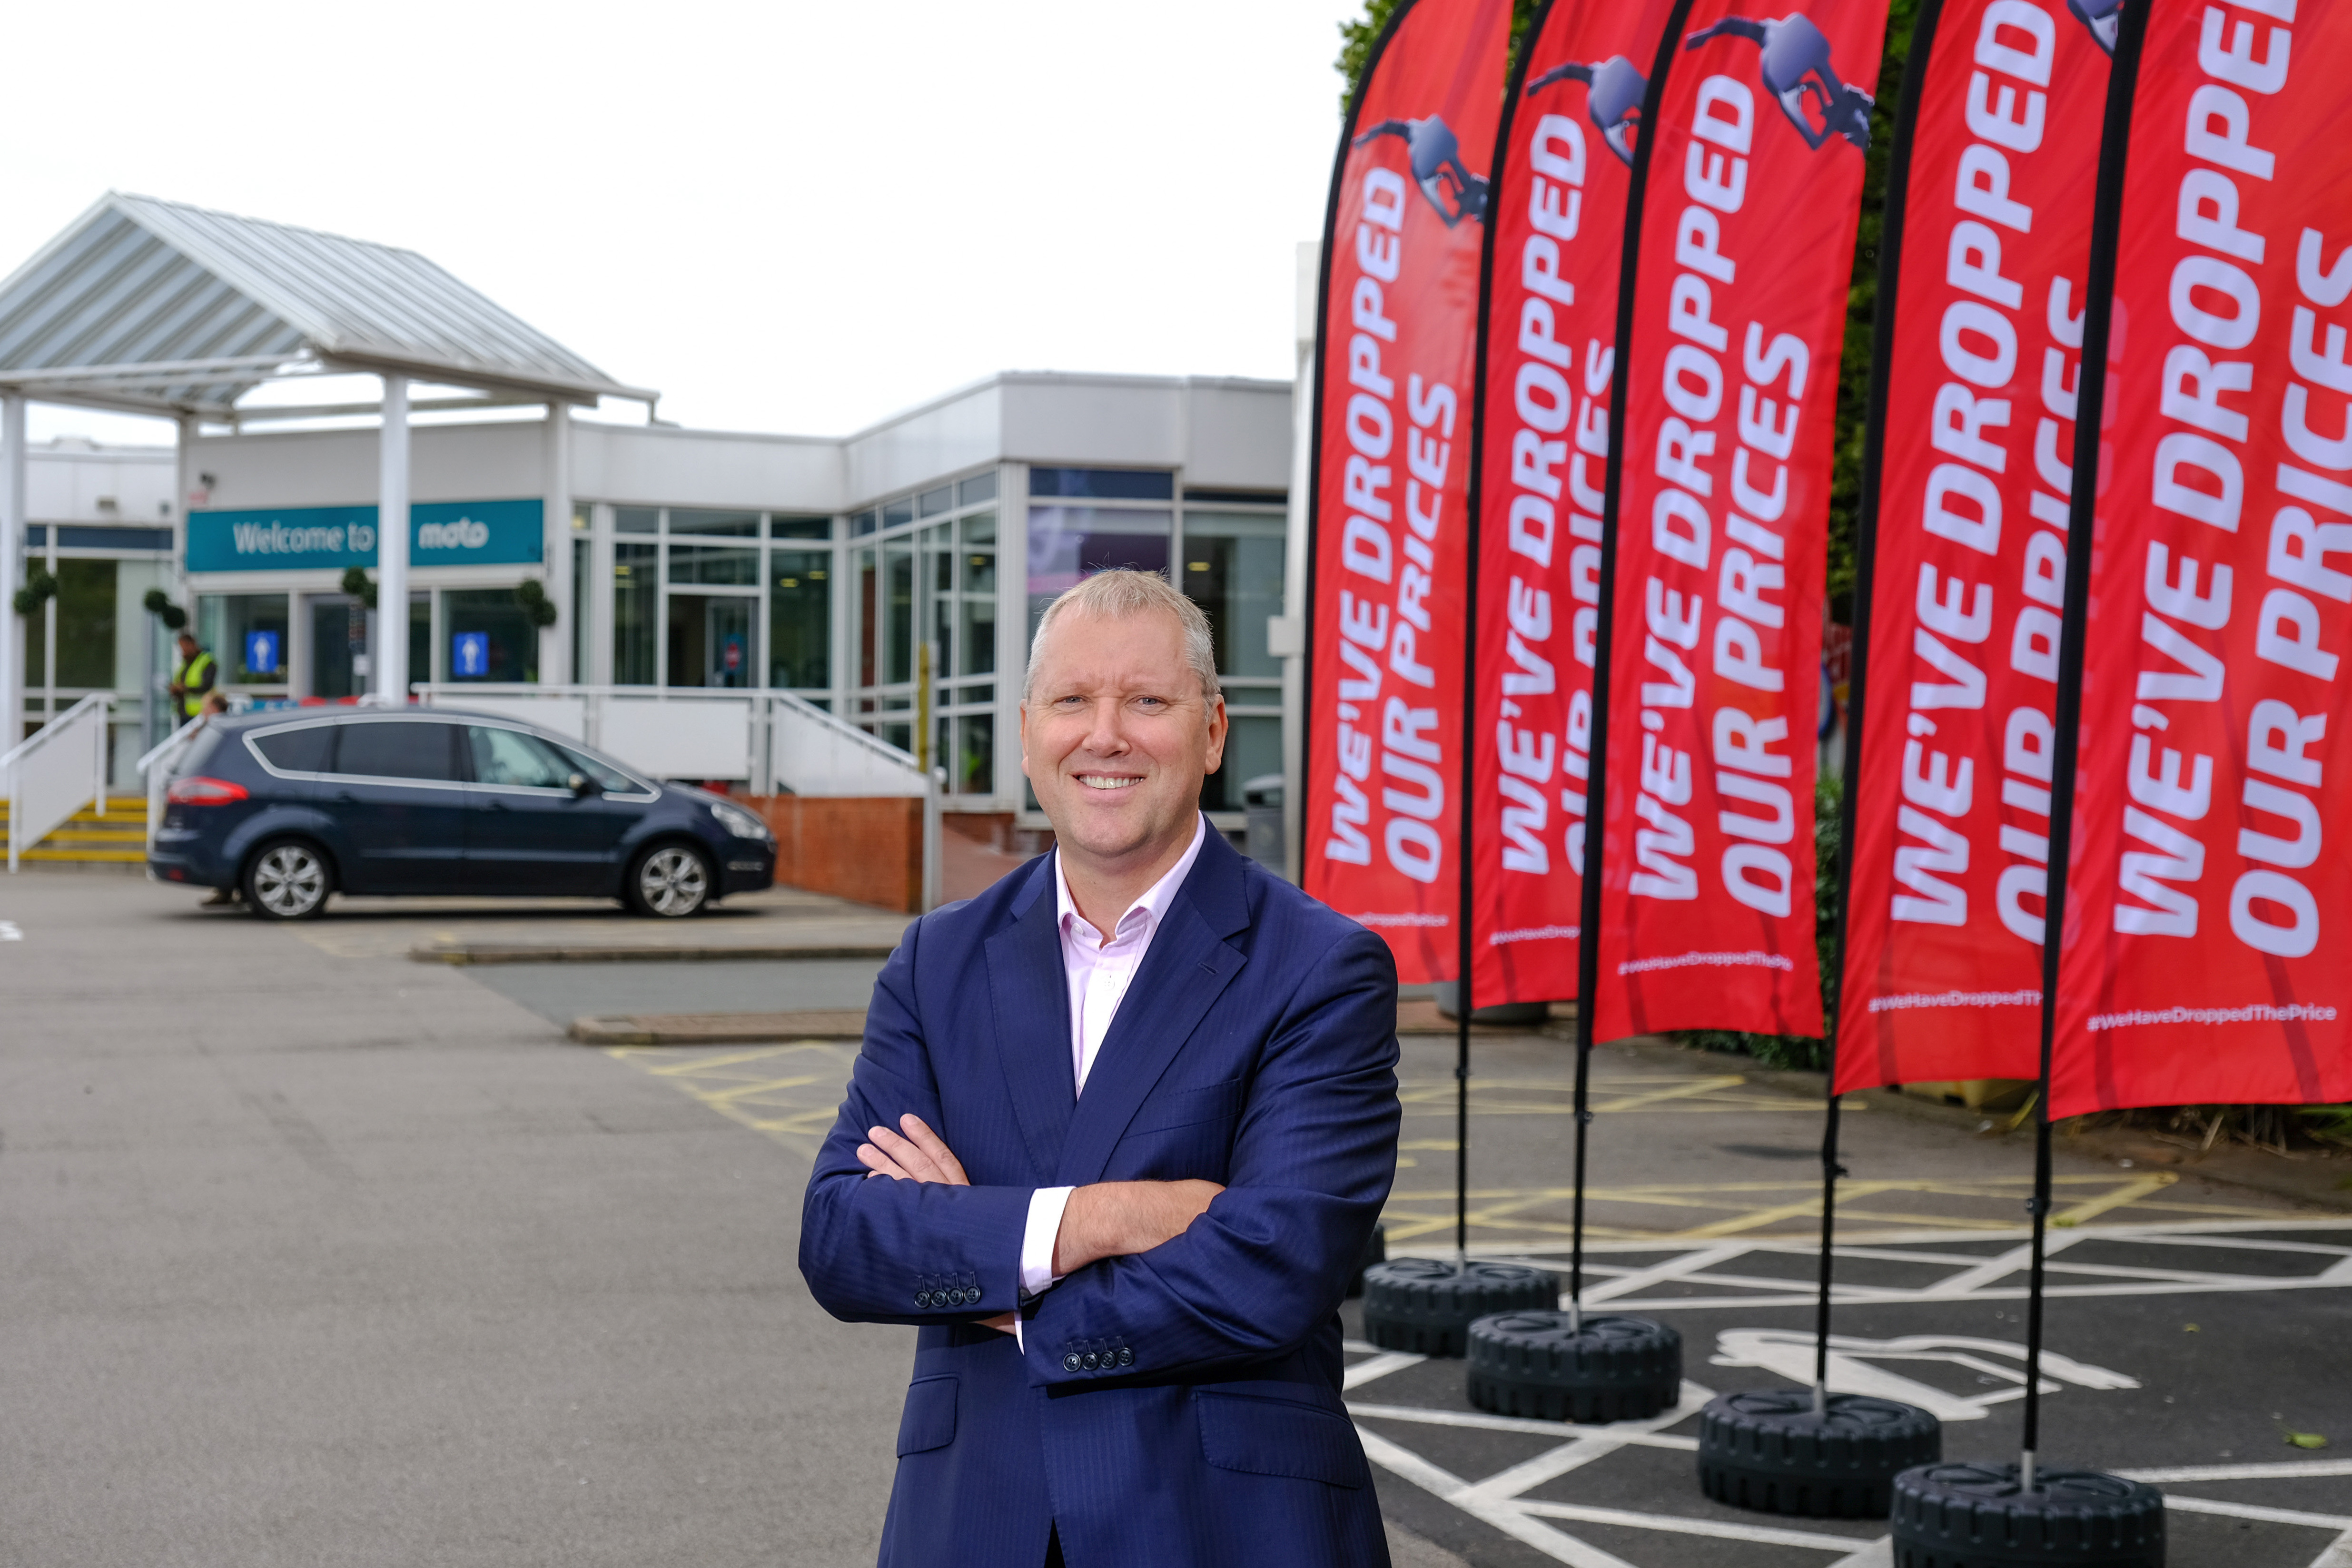 Moto Hospitality Chief Executive Ken McMeikan launches fuel price drop campaign - 780x520